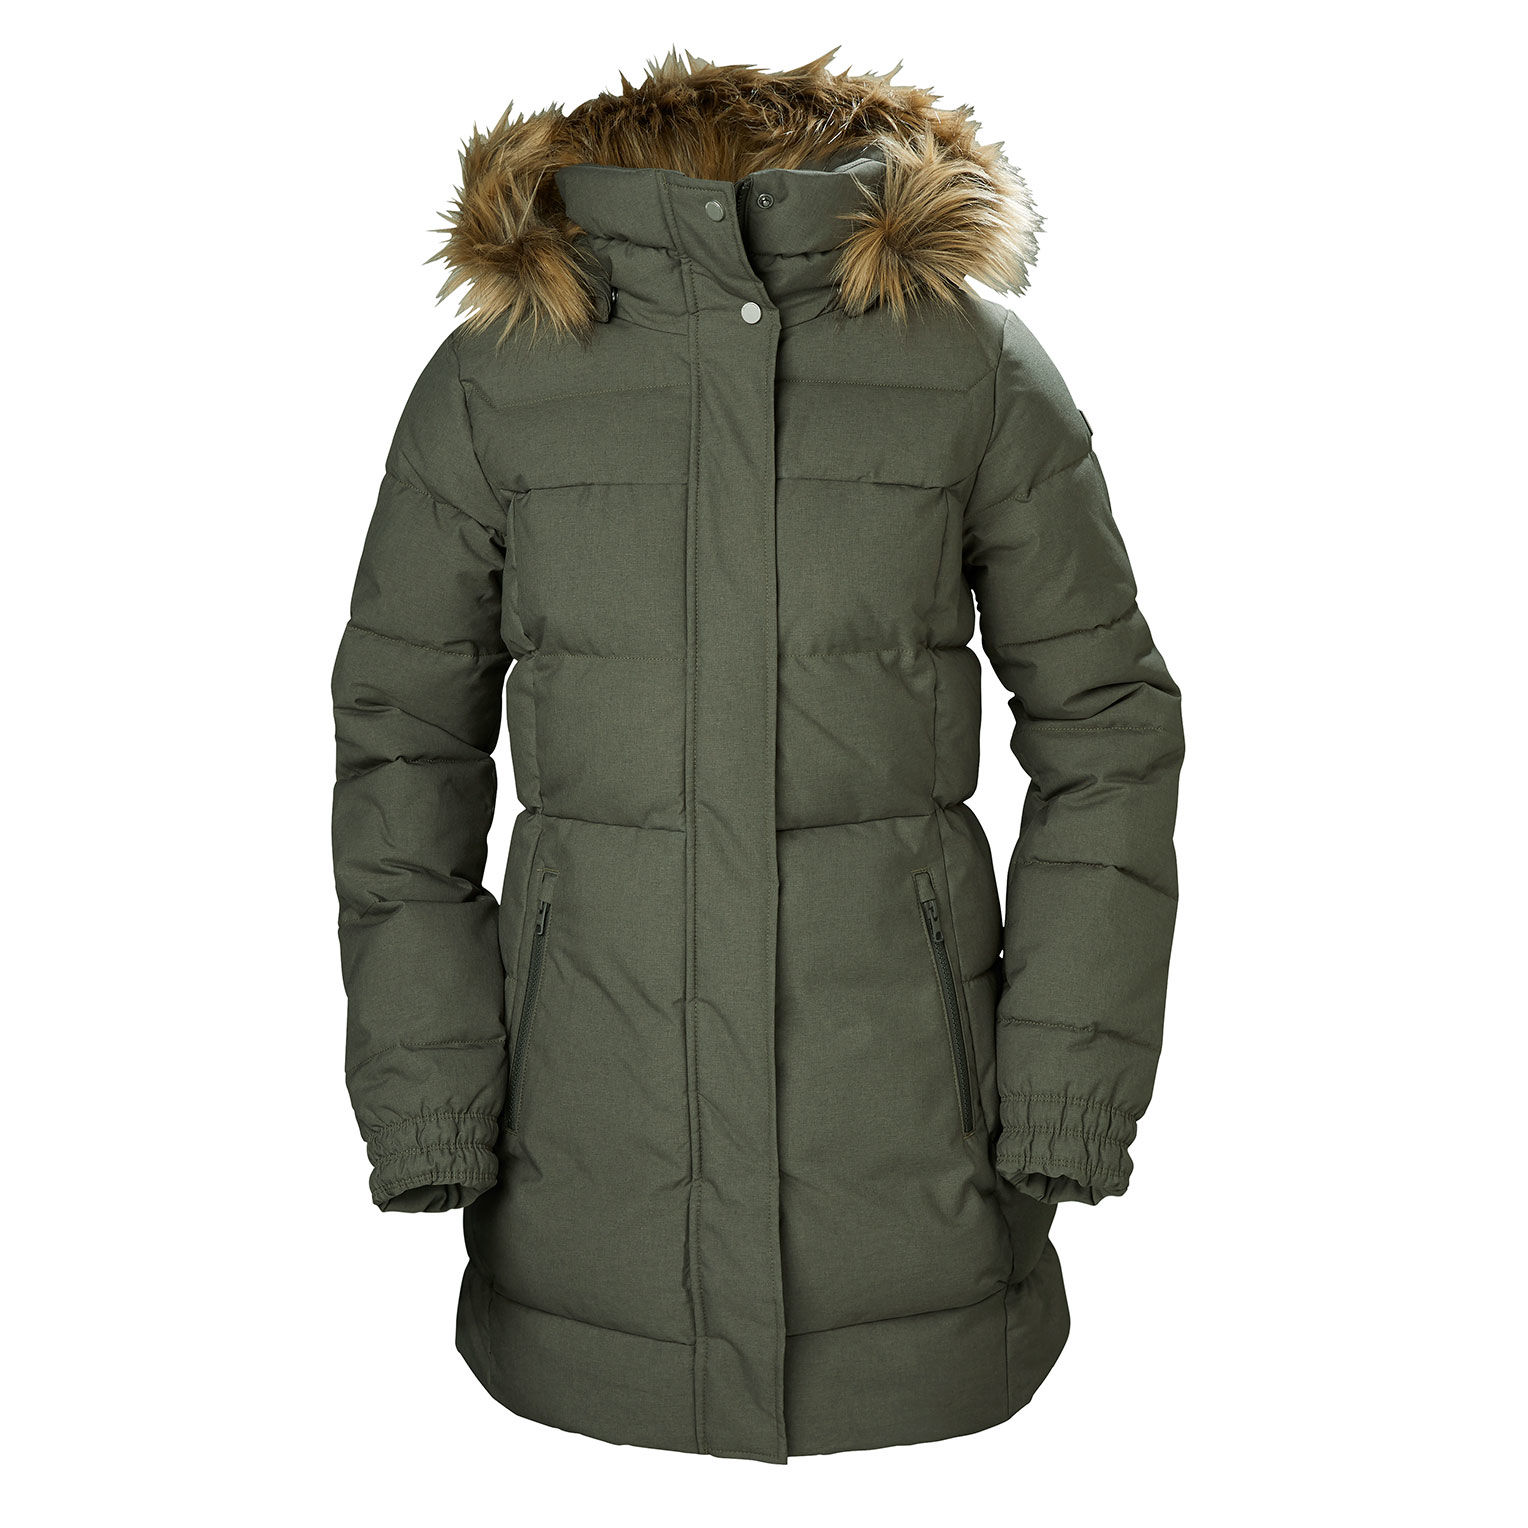 a2bc8ccc57 Helly Hansen Blume Puffy Parka - Women's, Up to 38% Off with Free S&H —  CampSaver